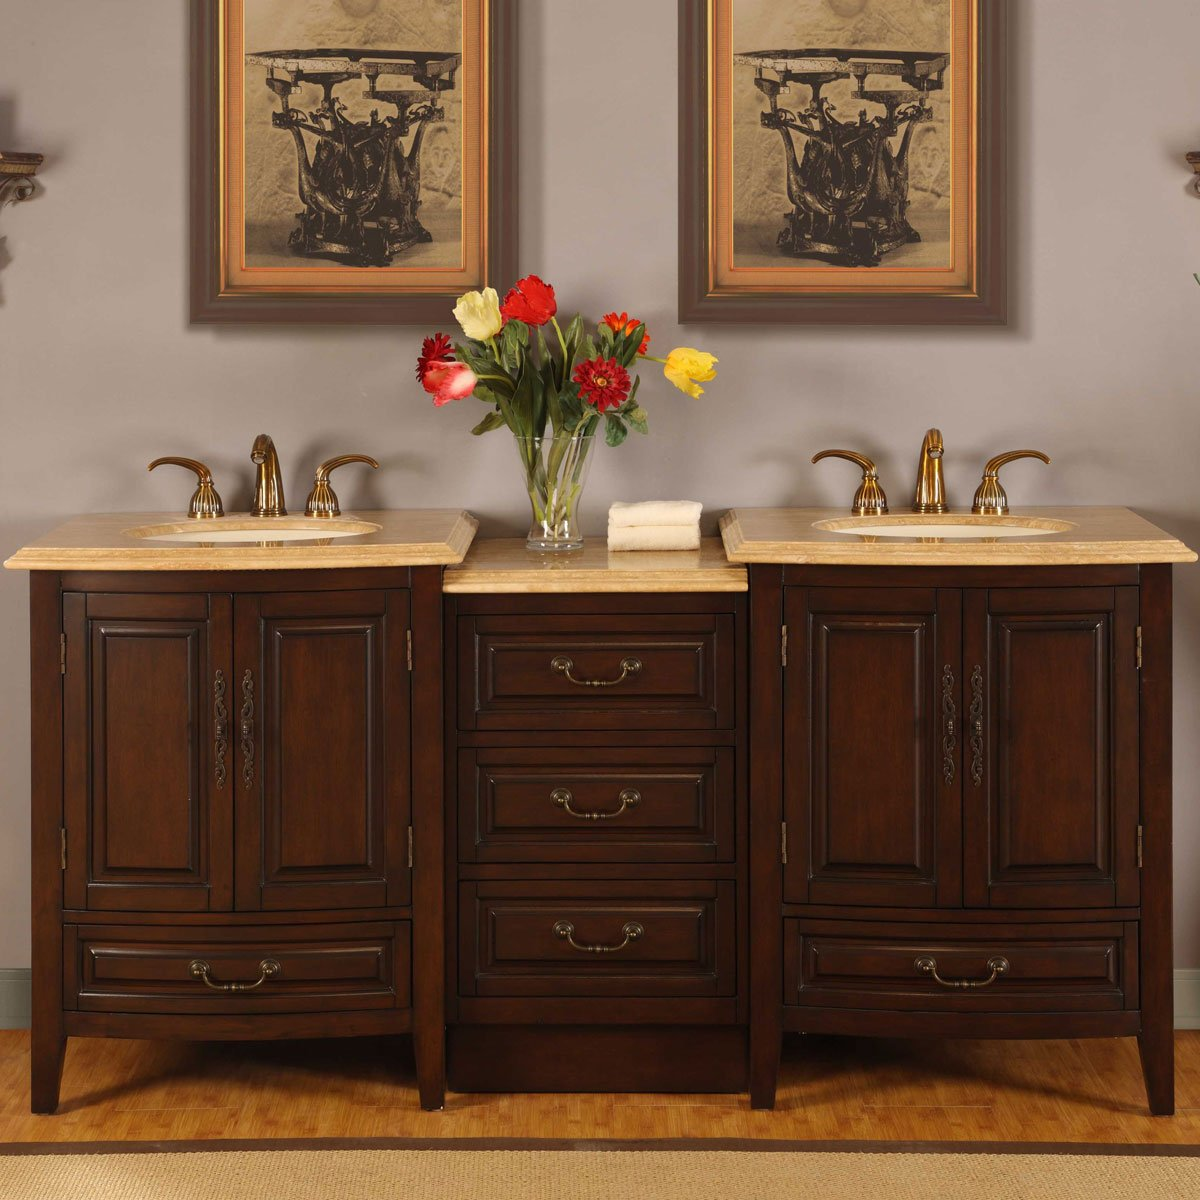 Silkroad Exclusive Travertine Top Double Sink Bathroom Vanity with LED Light Furniture Cabinet , 73-Inch